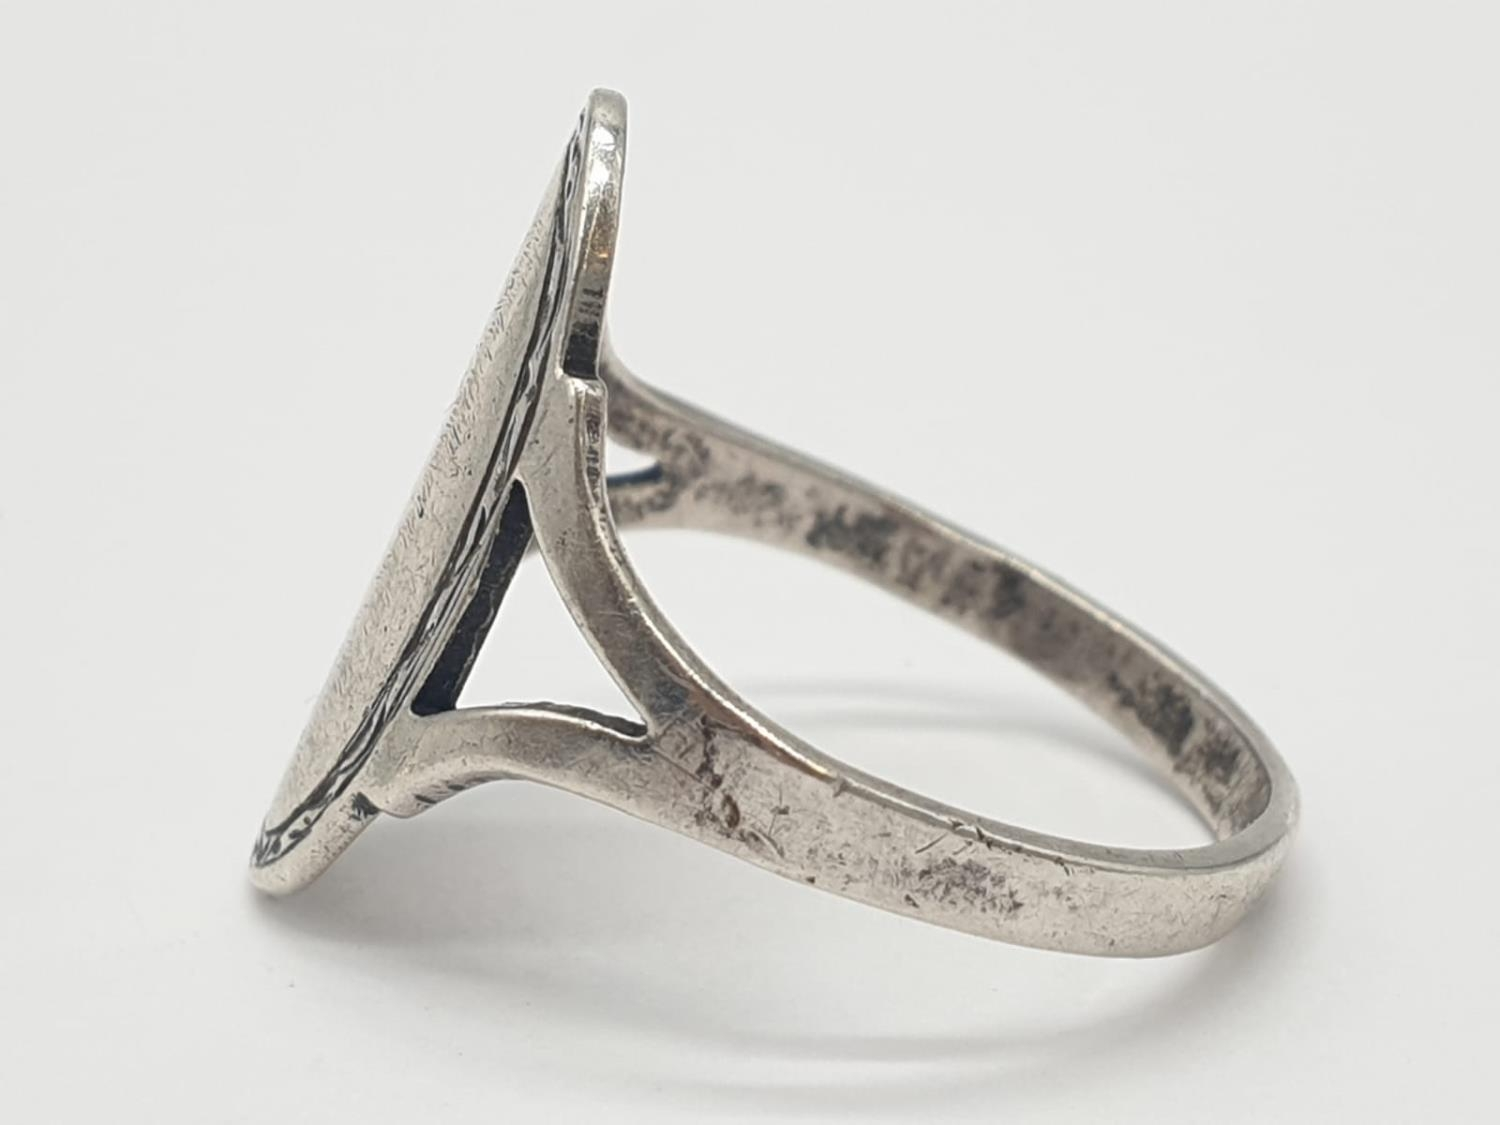 L&W Silver Vintage RING. 2.2g Size M. - Image 2 of 5